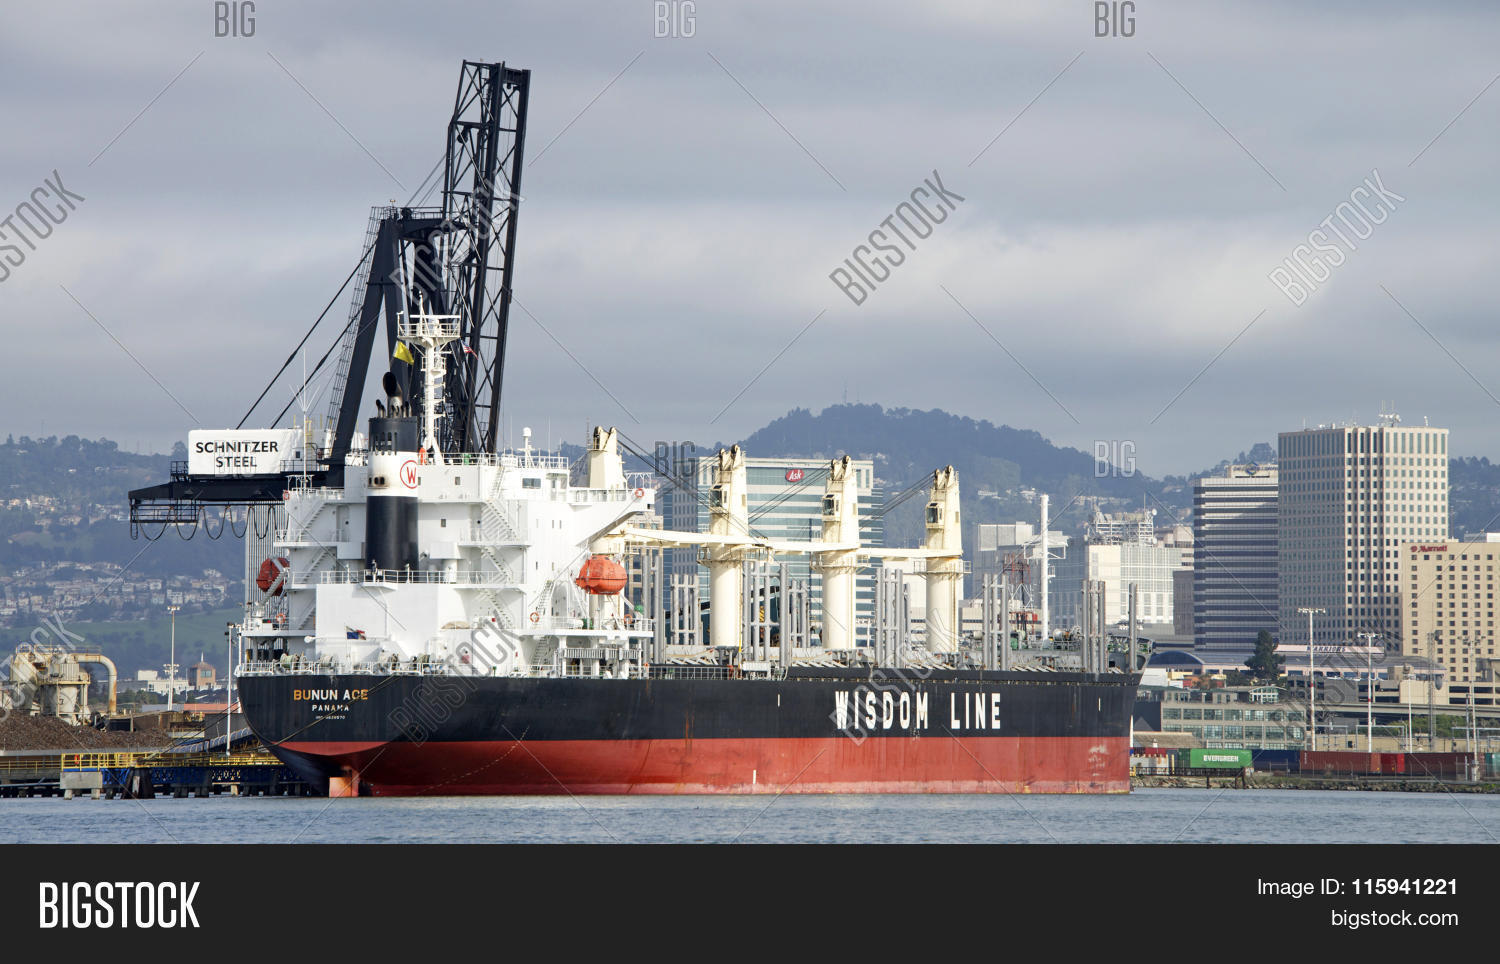 Bulk Carrier BUNUN ACE Image Photo Free Trial Bigstock - Schnitzer scrap